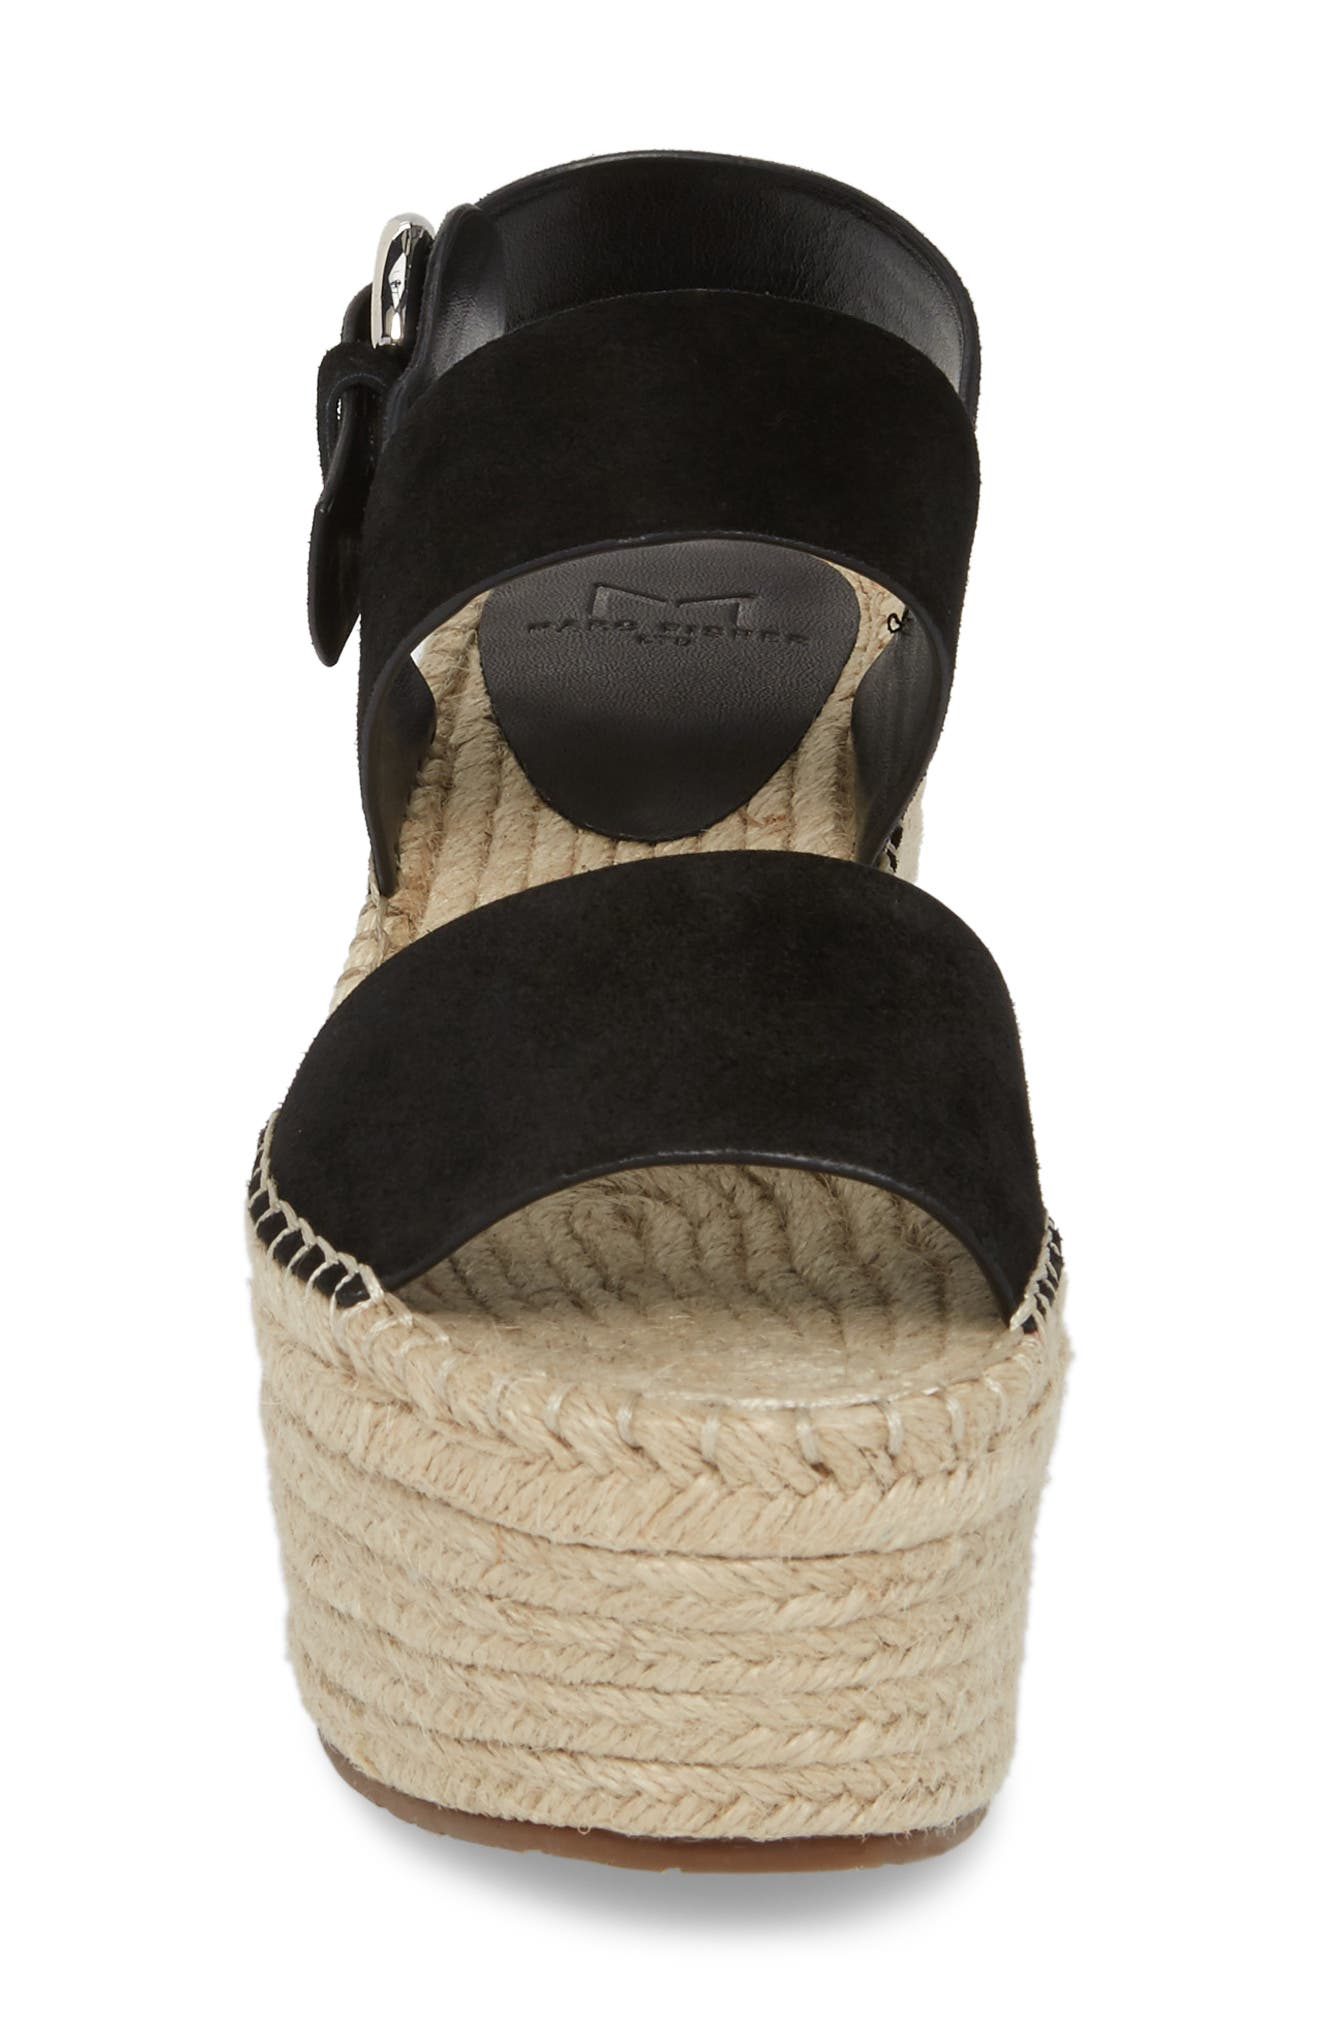 Renni Espadrille Platform Wedge Sandal,                             Alternate thumbnail 4, color,                             002